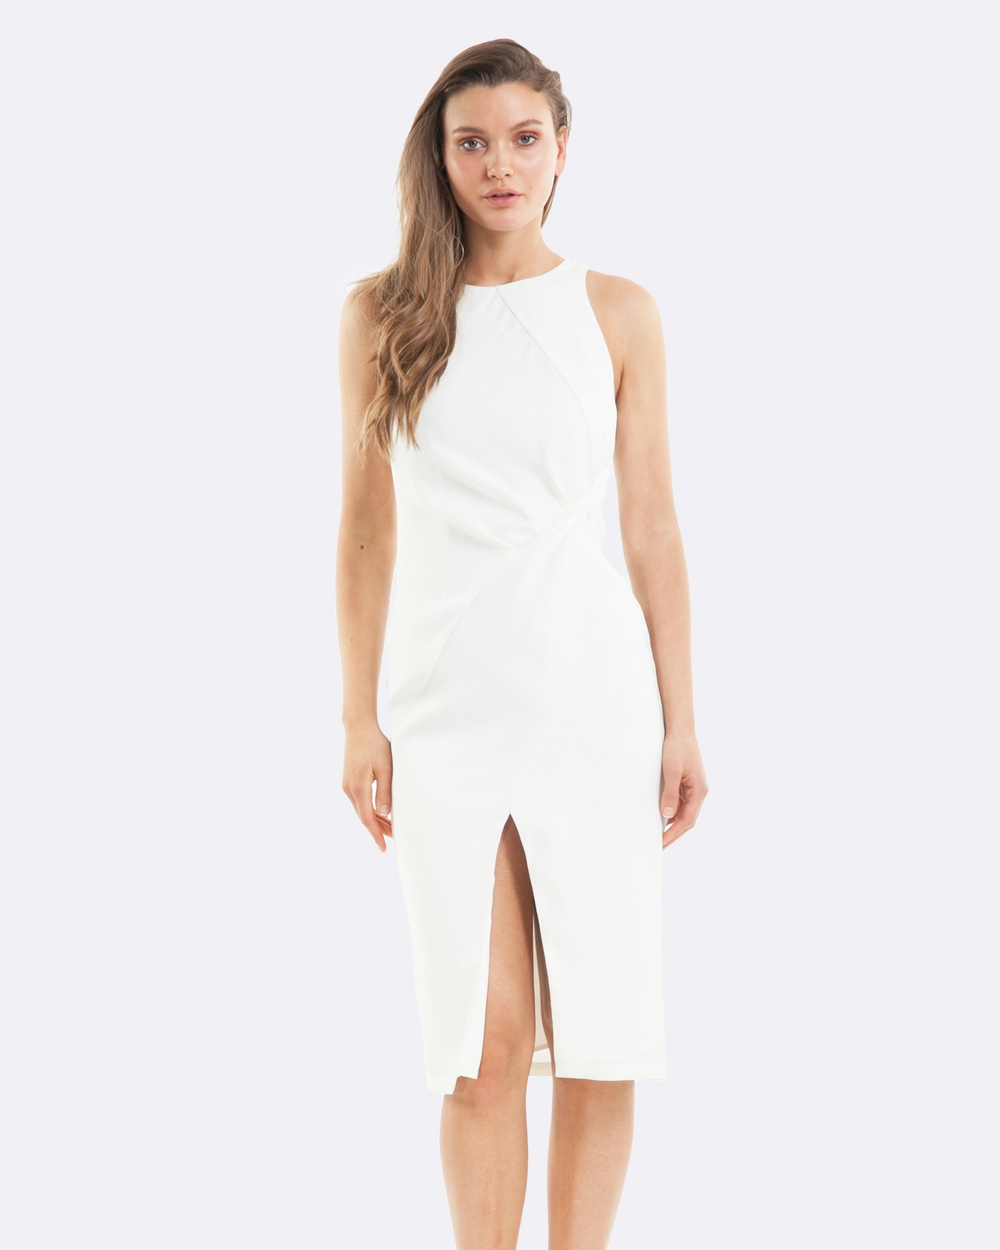 Amelius Blanco Dress Dresses White Blanco Dress